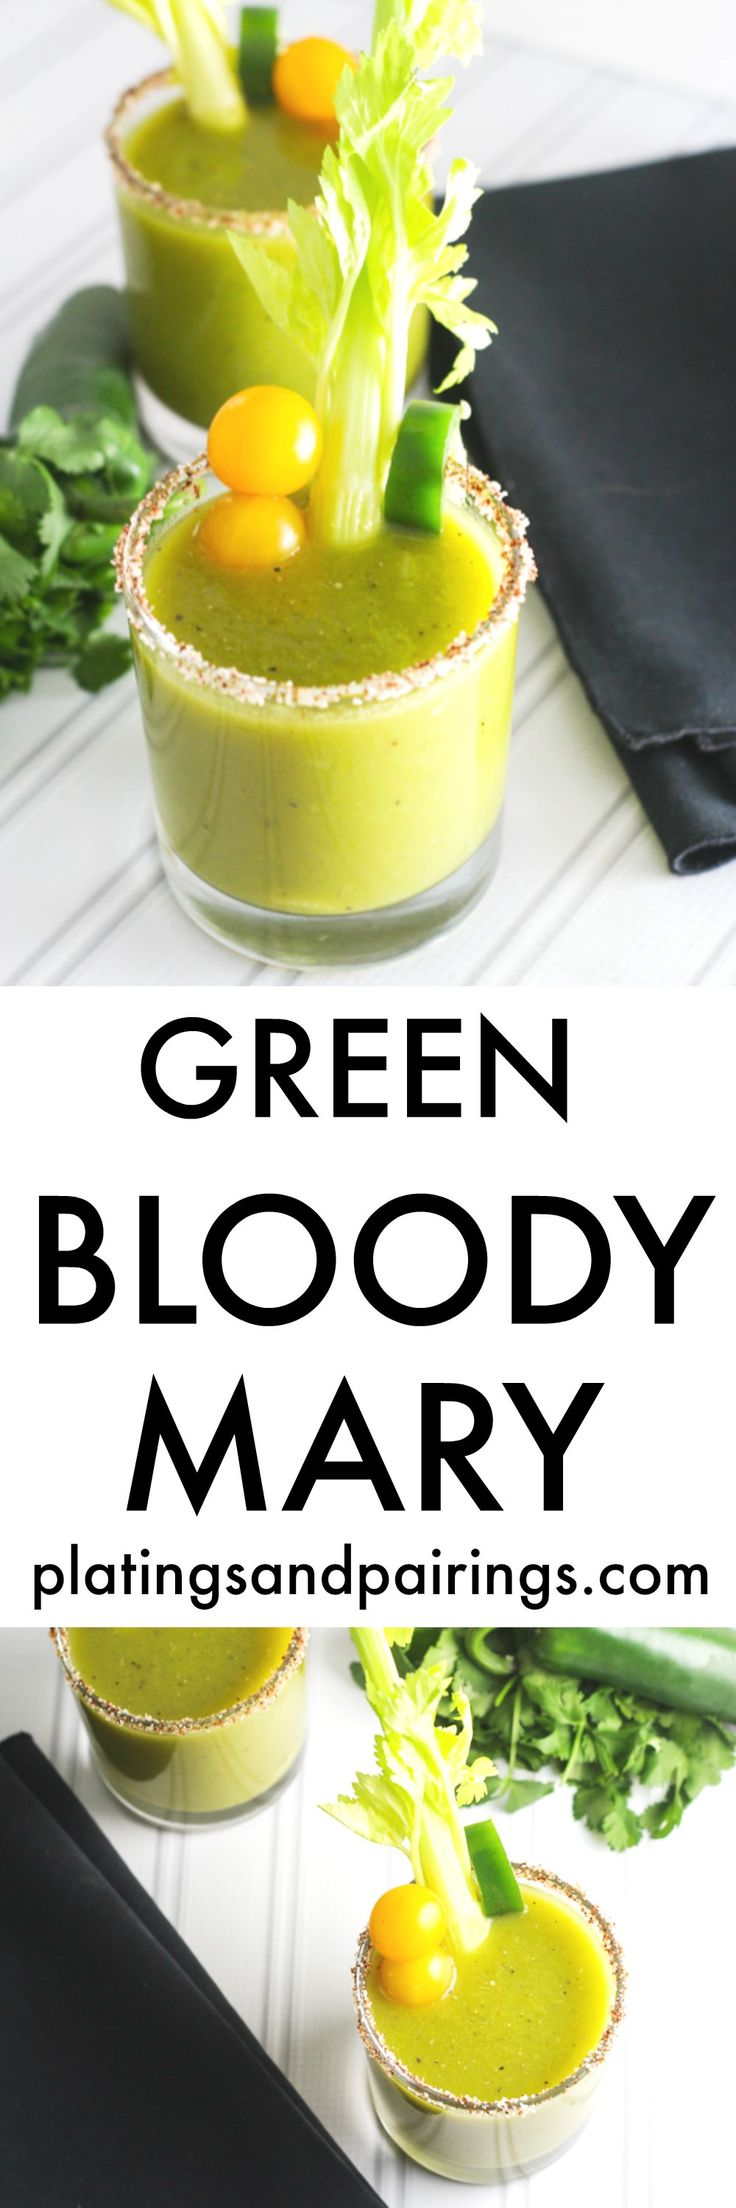 This Green Bloody Mary is a fun twist on the classic cocktail - Made with tomatillos, horseradish and jalapeno infused vodka | platingsandpairings.com